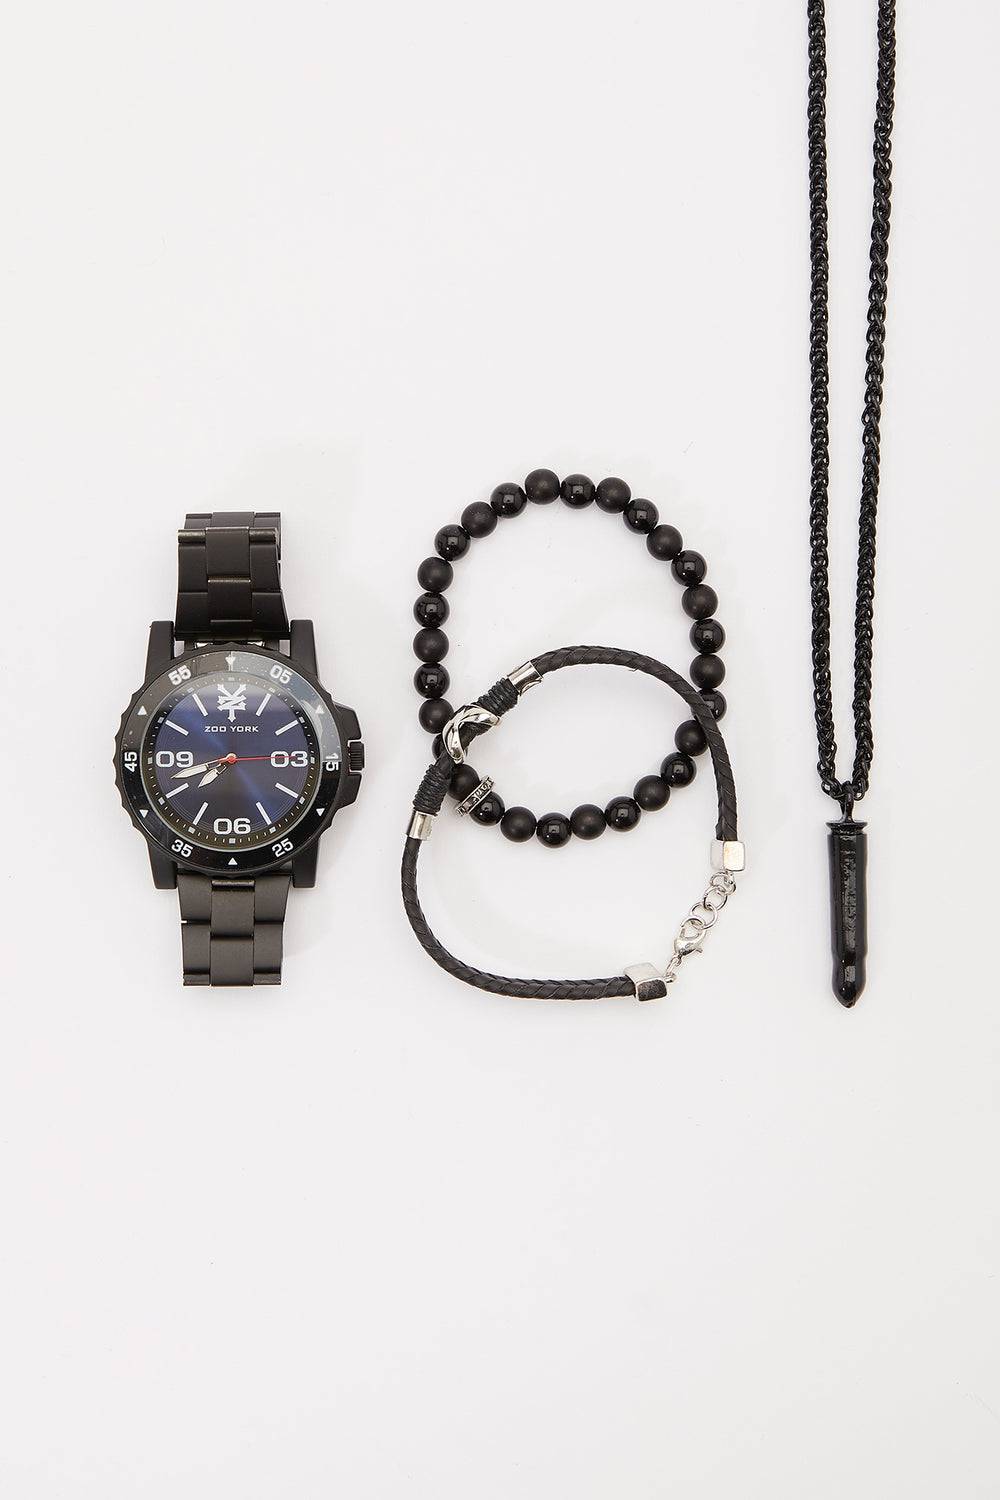 Zoo York Mens Black Watch Set Black